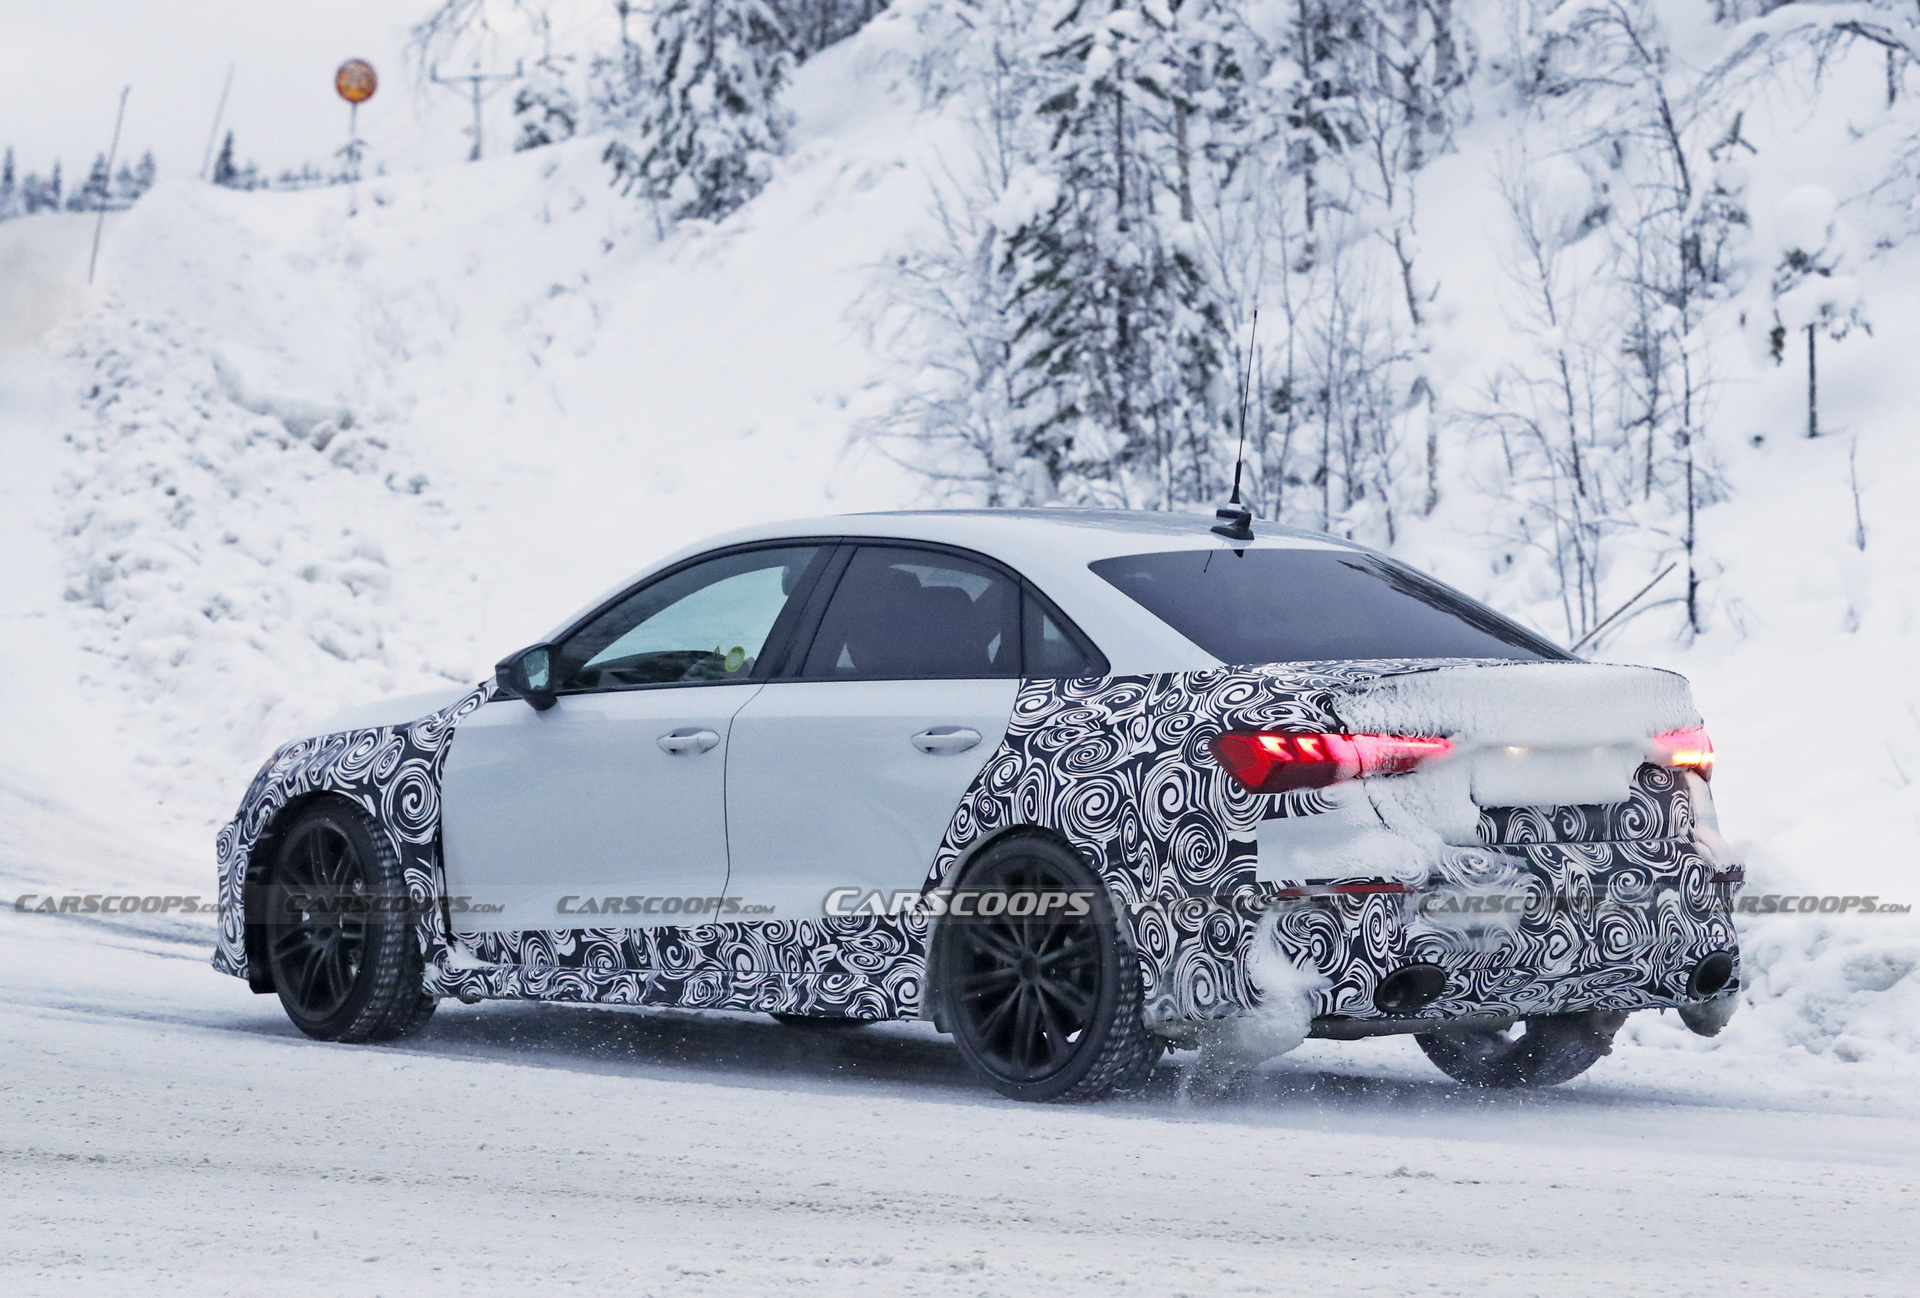 2022 Audi RS3 Sedan Flashes Wide Body Big Exhaust Pipes